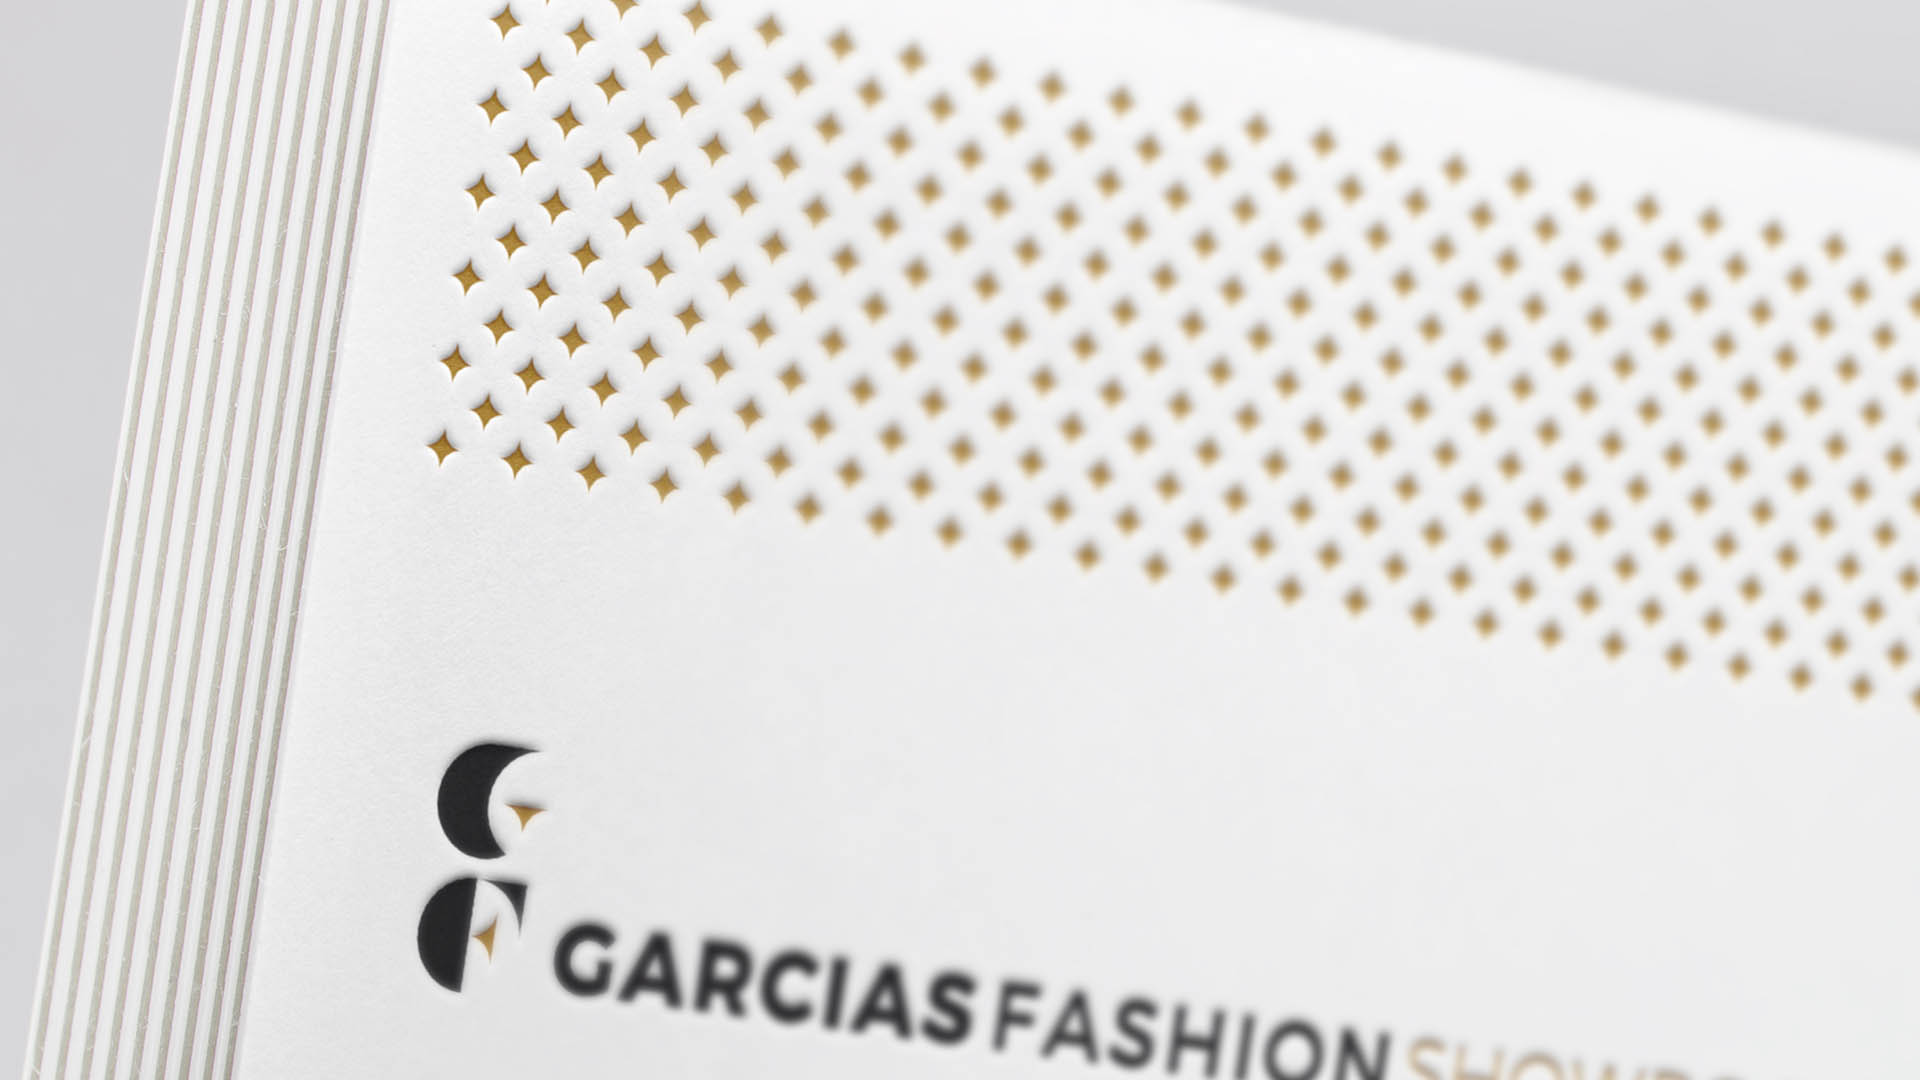 Garcias Fashion